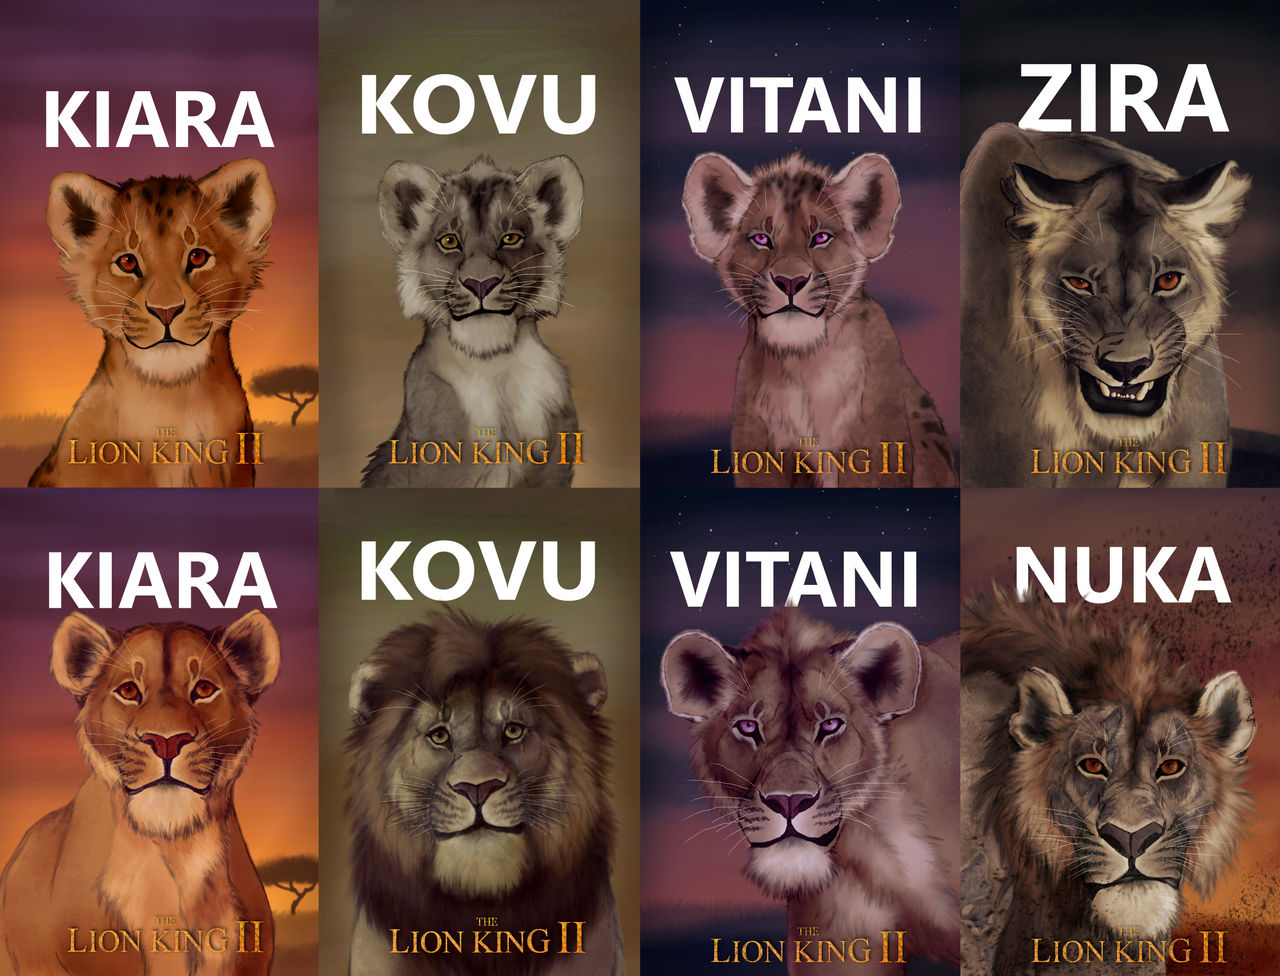 Tlk Simba S Pride Fan Remake All Posters By Silver Wolf 17 On Deviantart